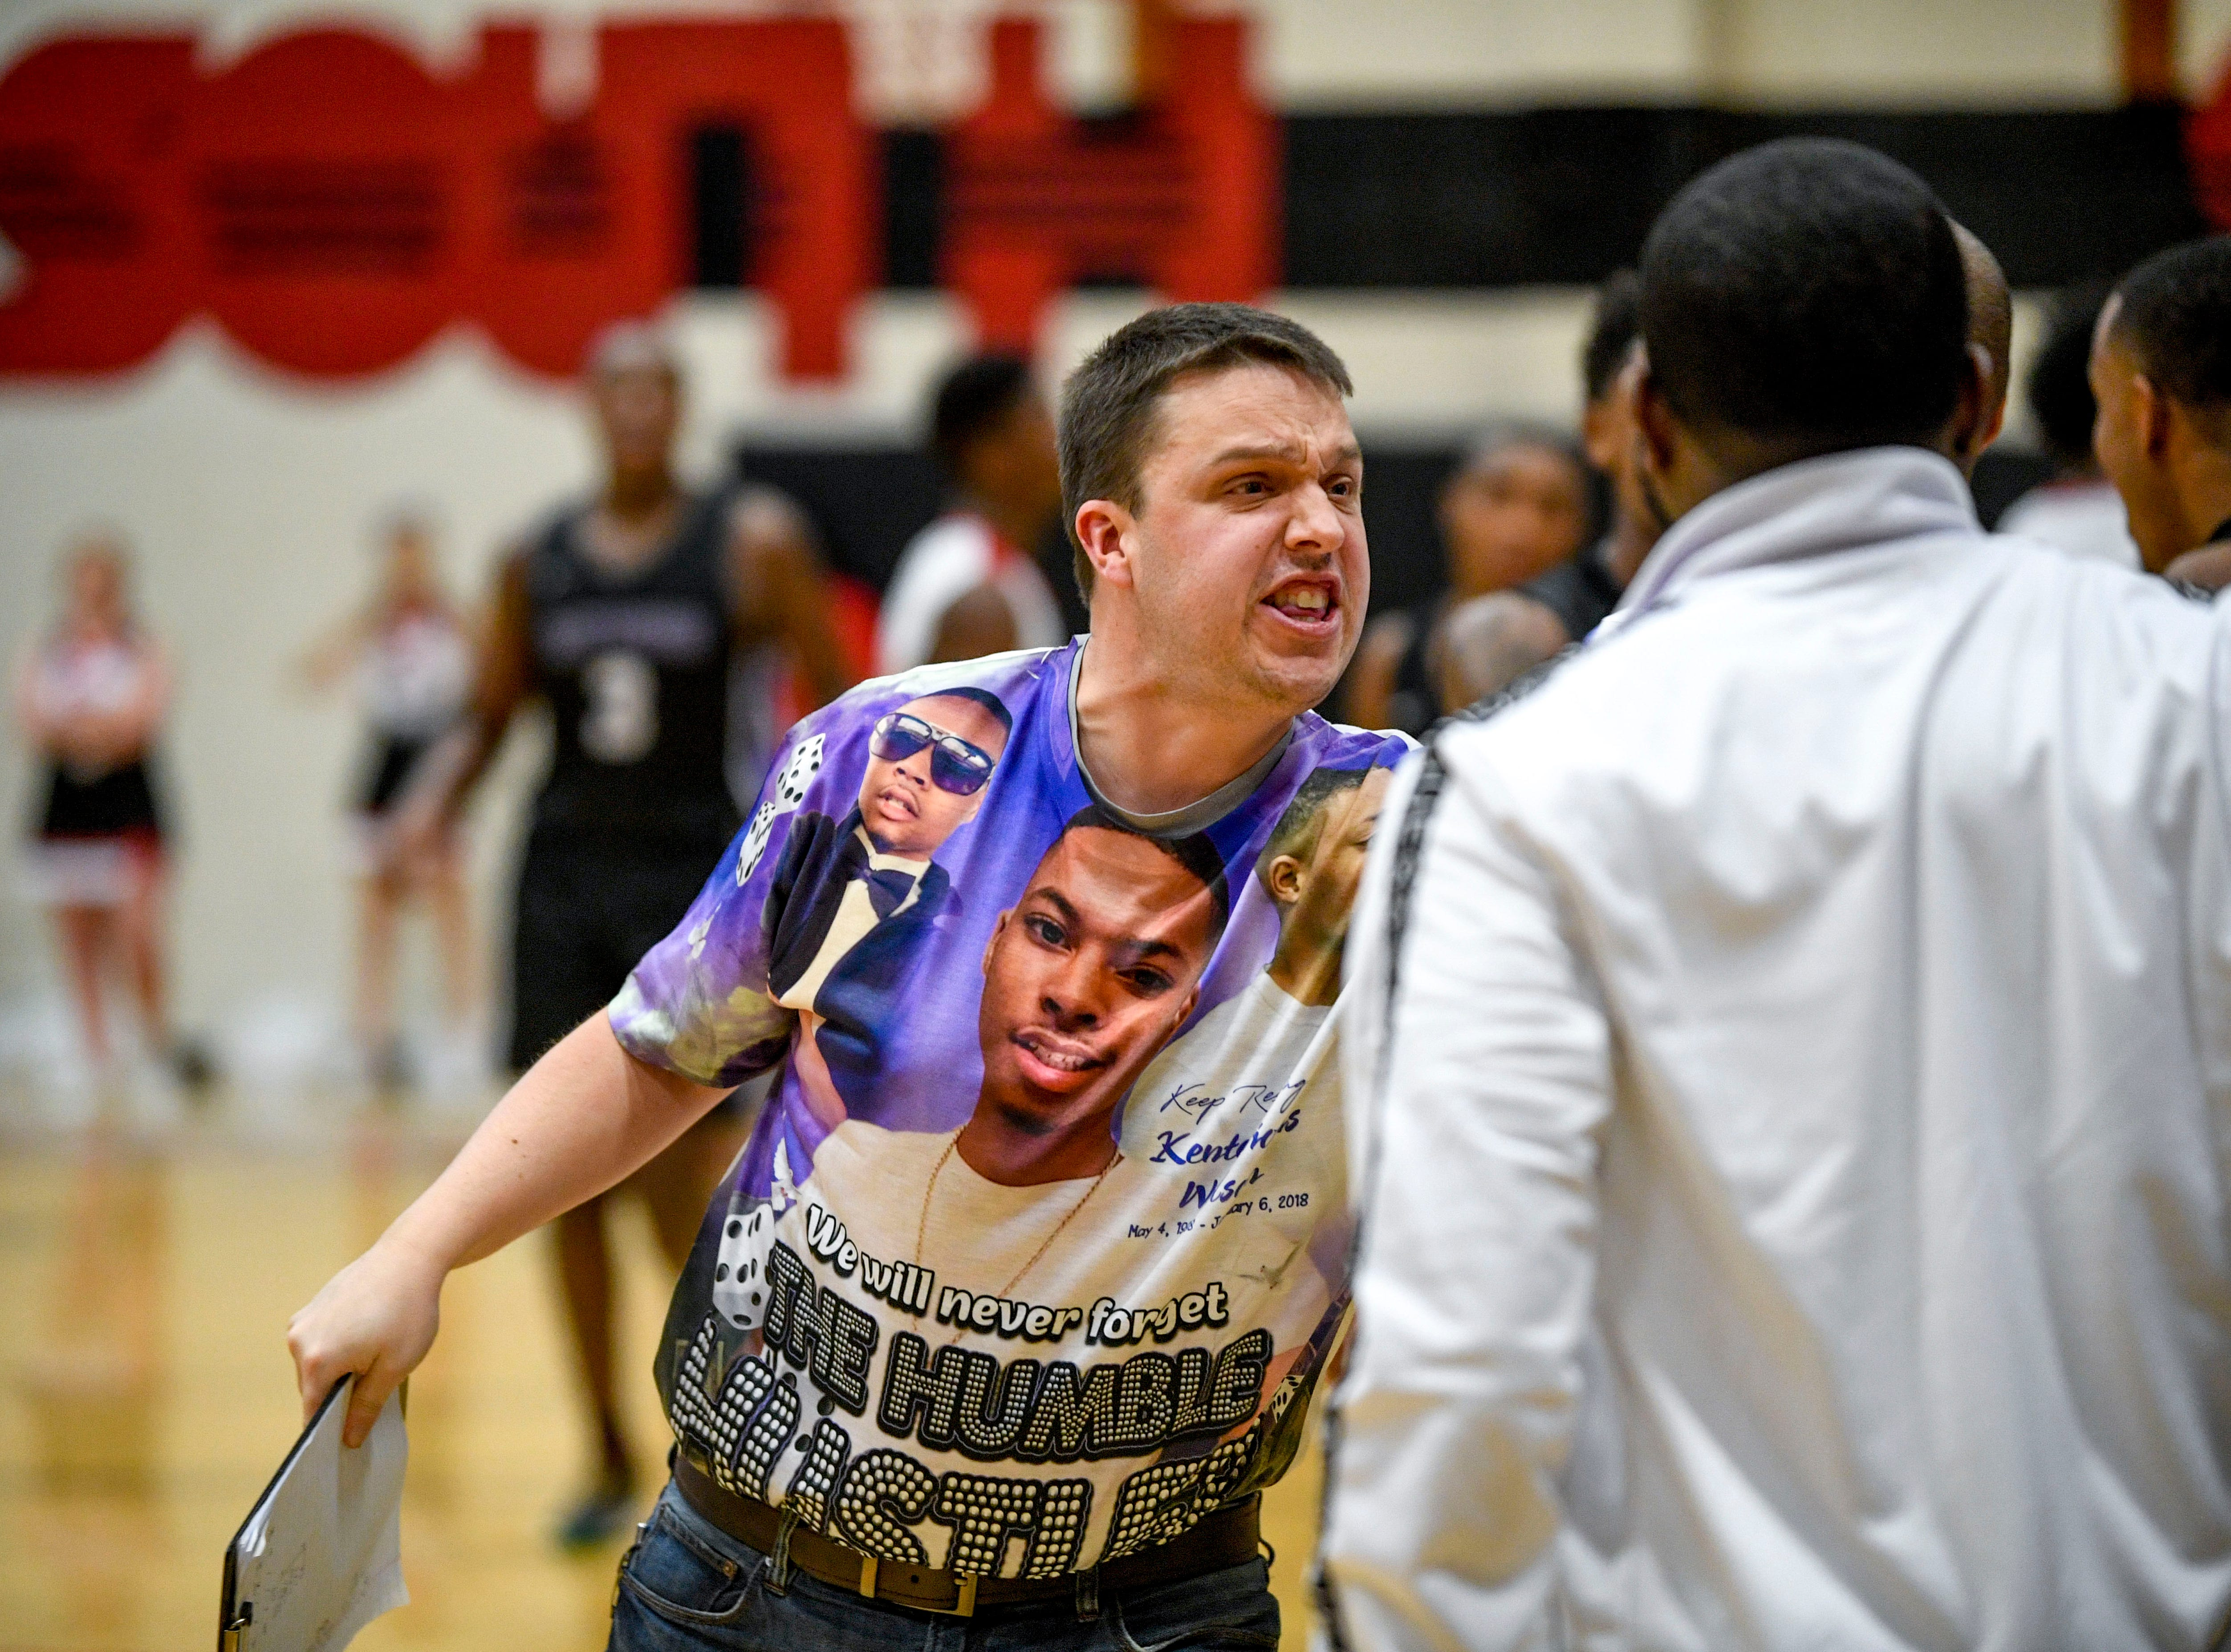 A Haywood assistant coach, wearing a special memorial t-shirt for Kentavious Wilson, yells to his players during a TSSAA basketball game between South Side and Haywood on the anniversary of Wilson, a former Haywood player's, death at South Side High School in Jackson, Tenn., on Saturday, Jan. 5, 2019.